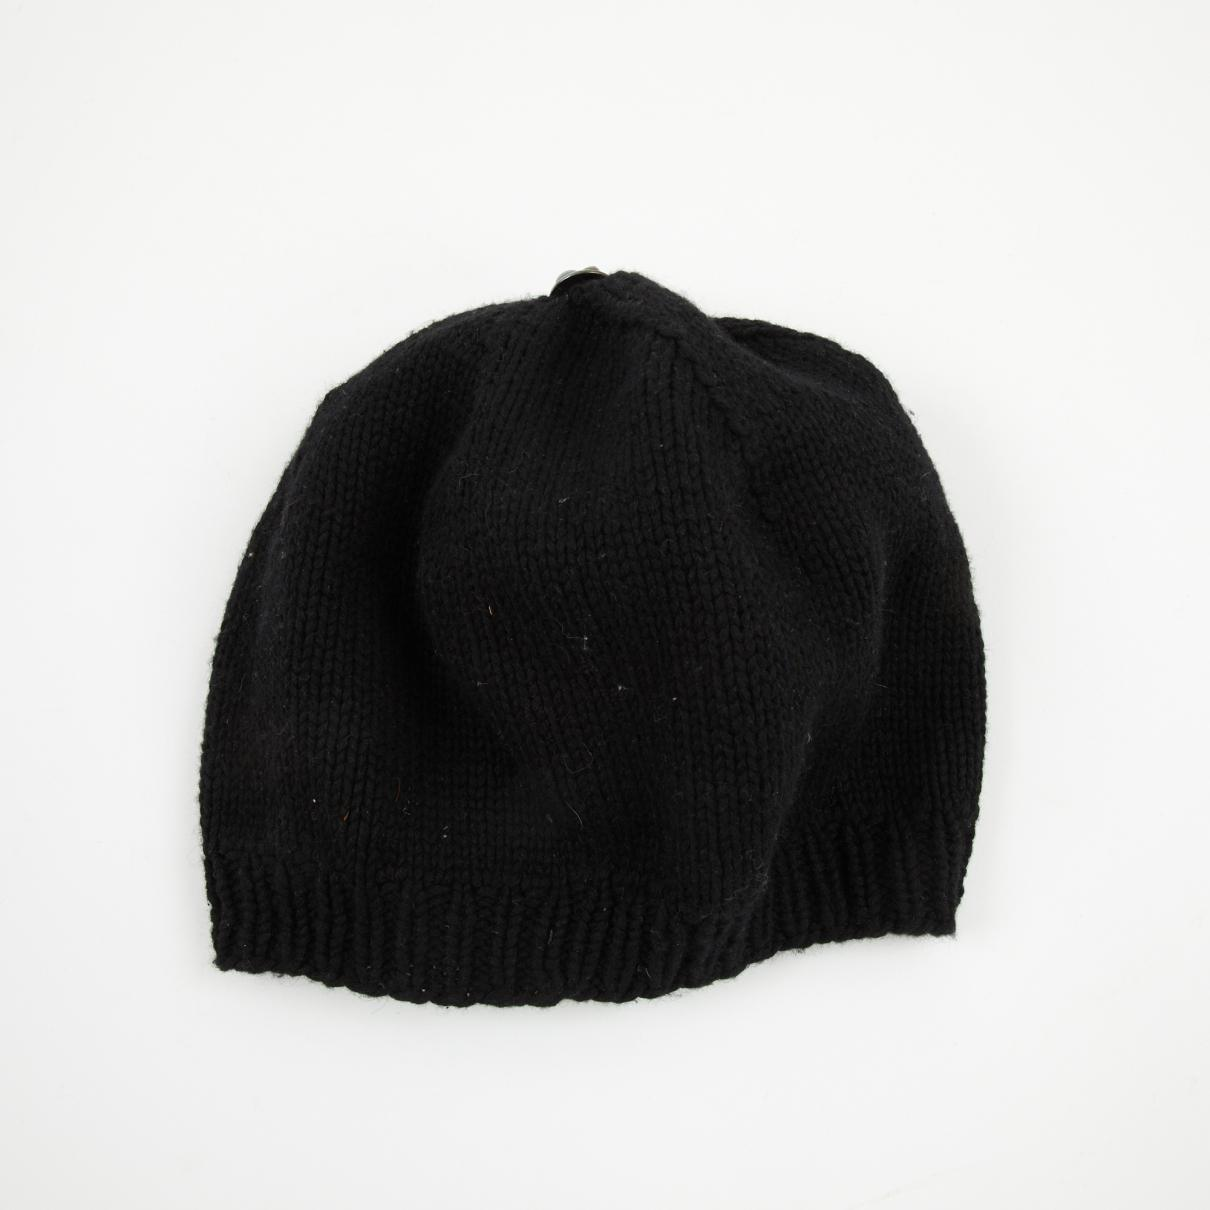 bb9755649c4 Chrome Hearts Wool Hat in Black for Men - Lyst